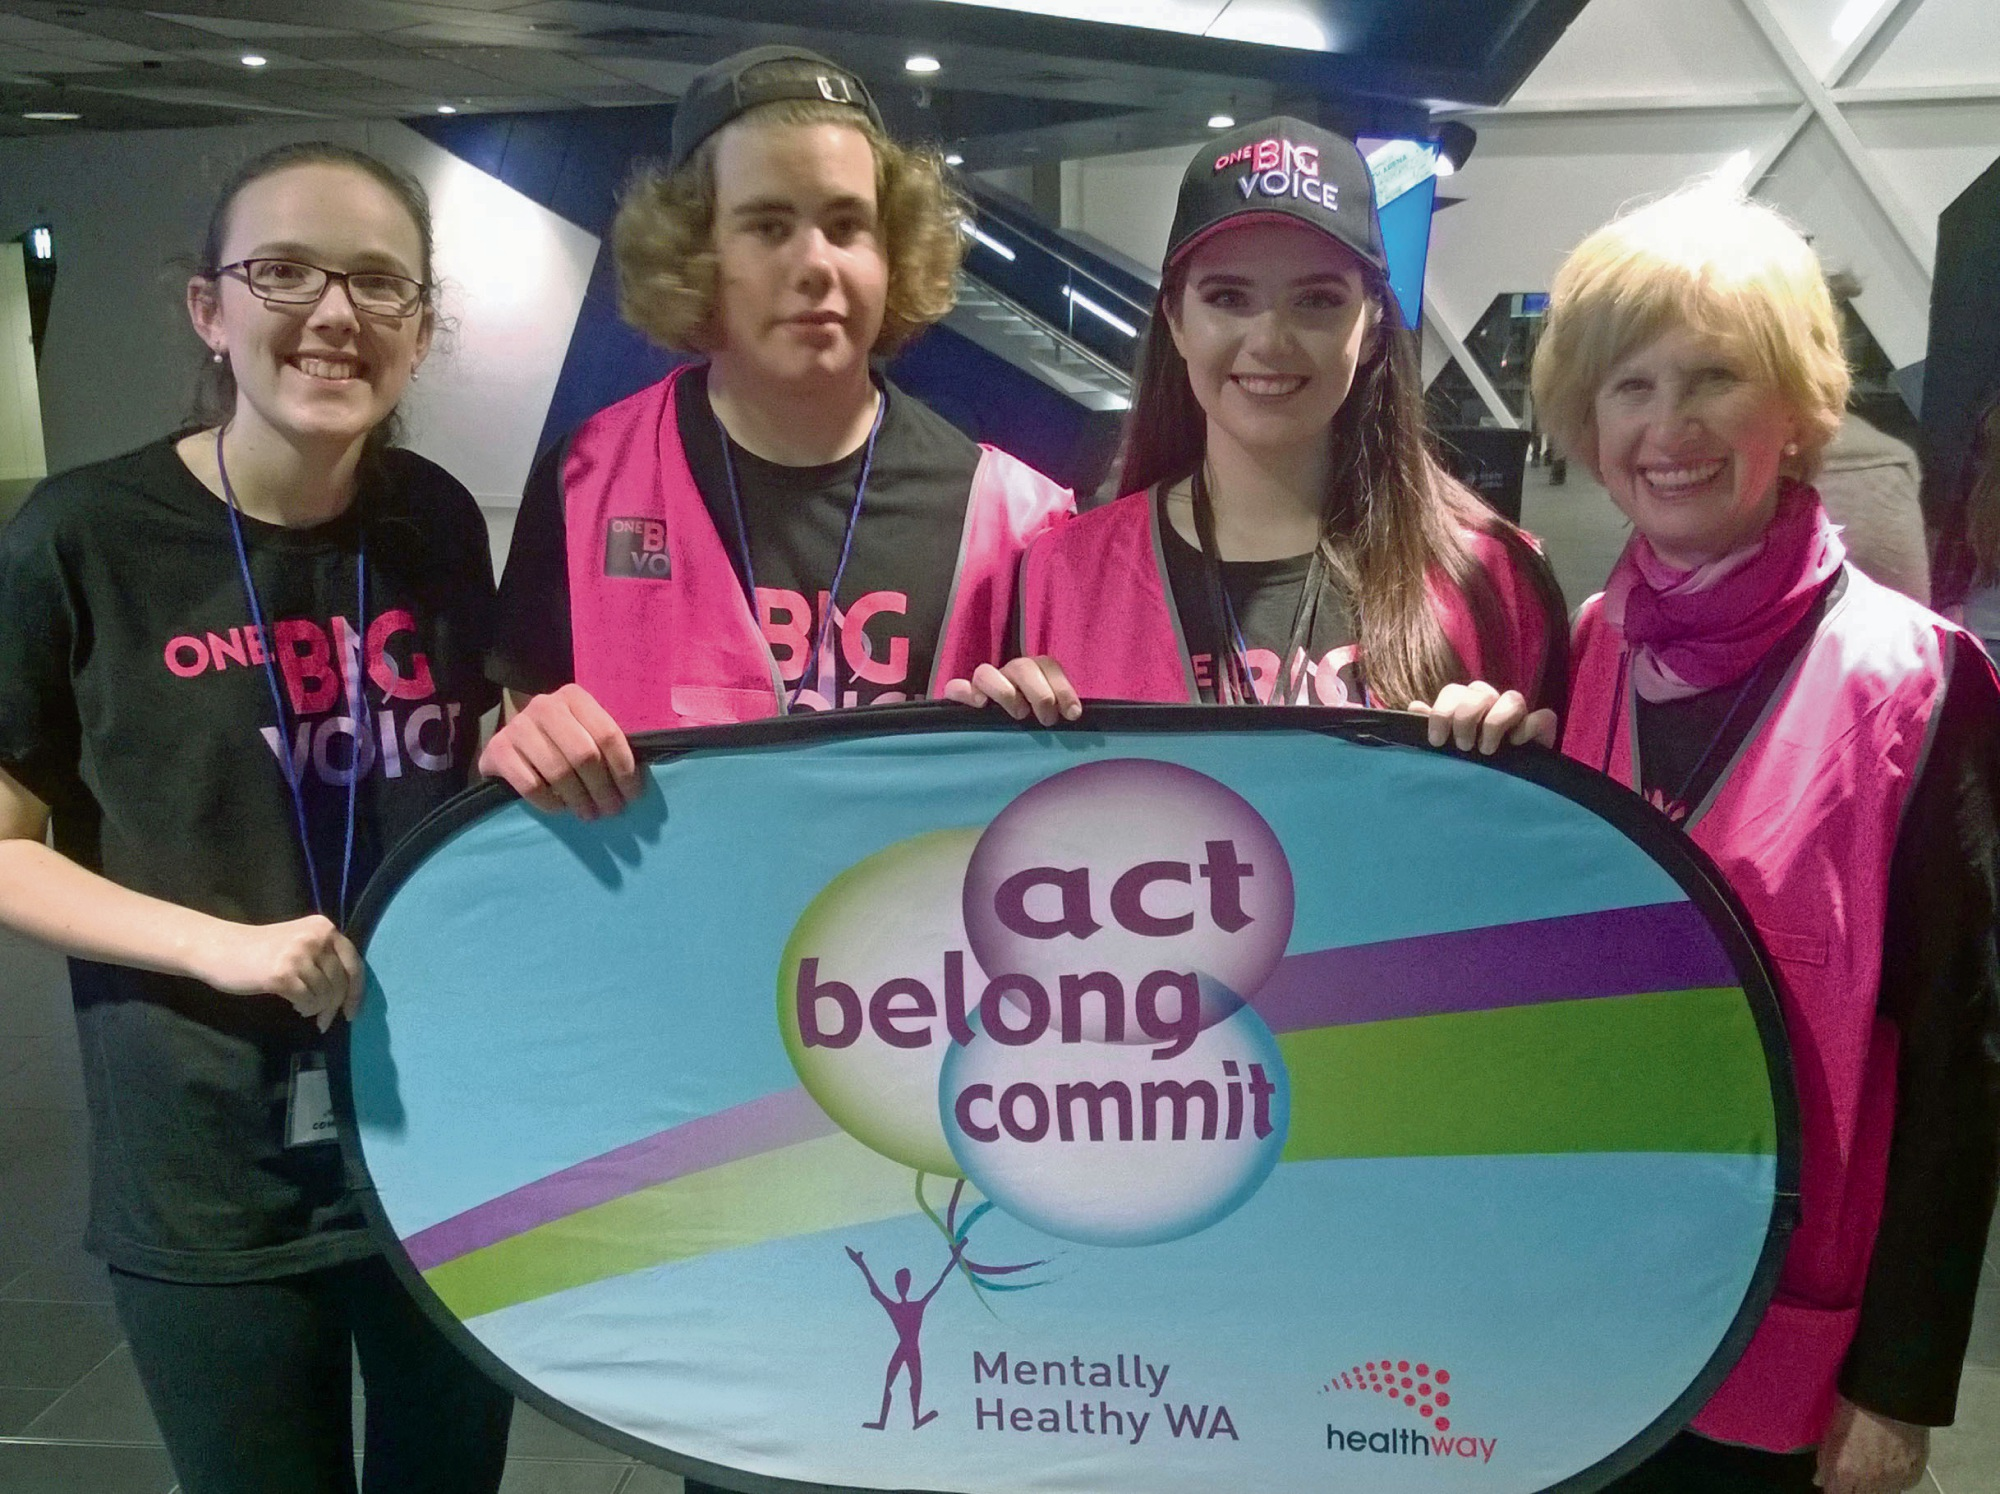 One Big Voice junior committee members Meka, Joel and Bethany with Bernice Marwick and a Healthway sponsorship banner.